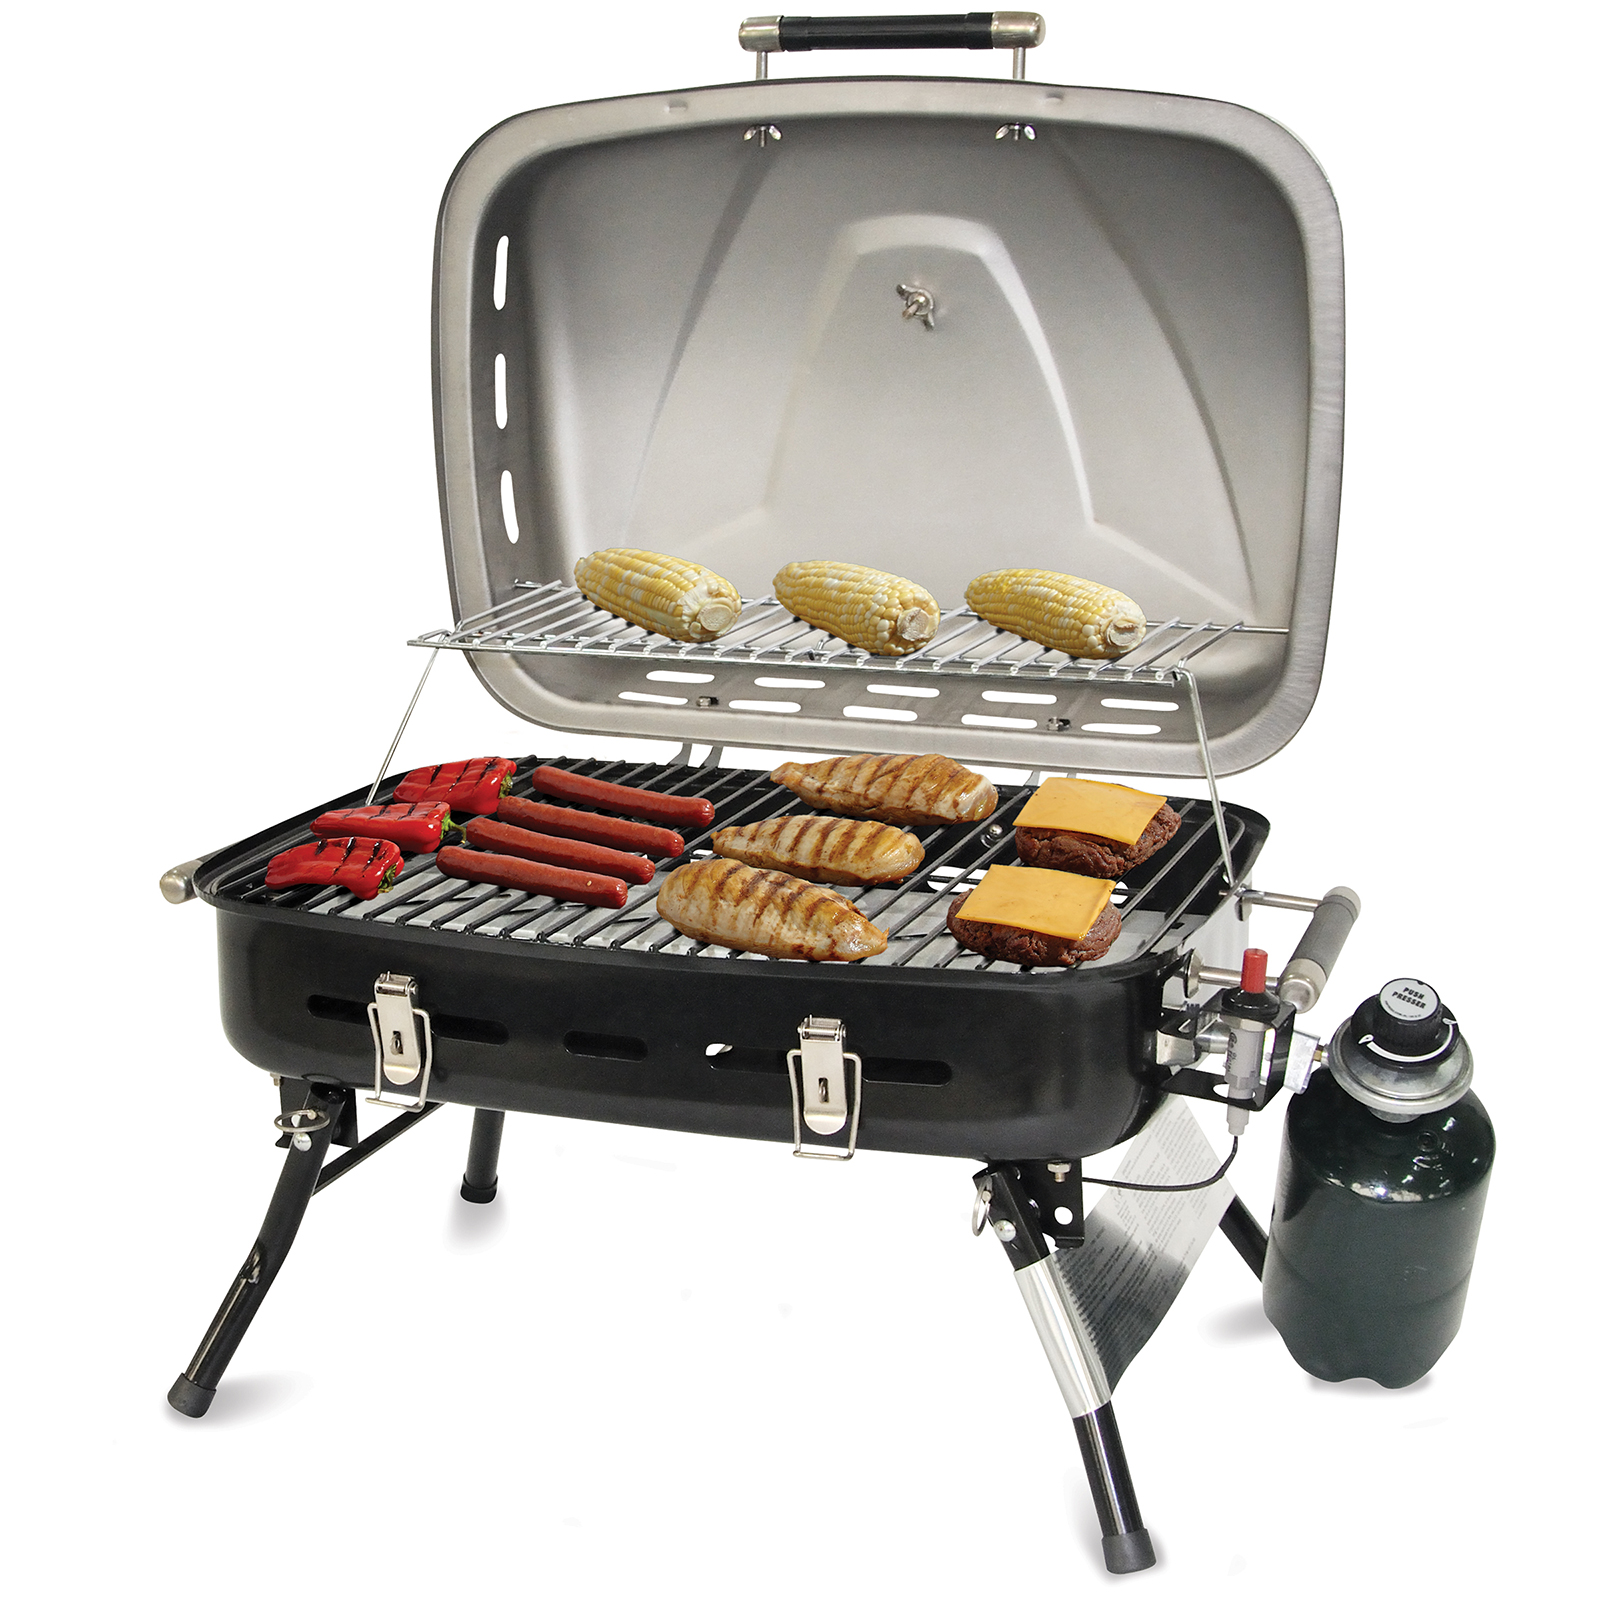 uniflame stainless steel portable outdoor barbecue gas grill. Black Bedroom Furniture Sets. Home Design Ideas